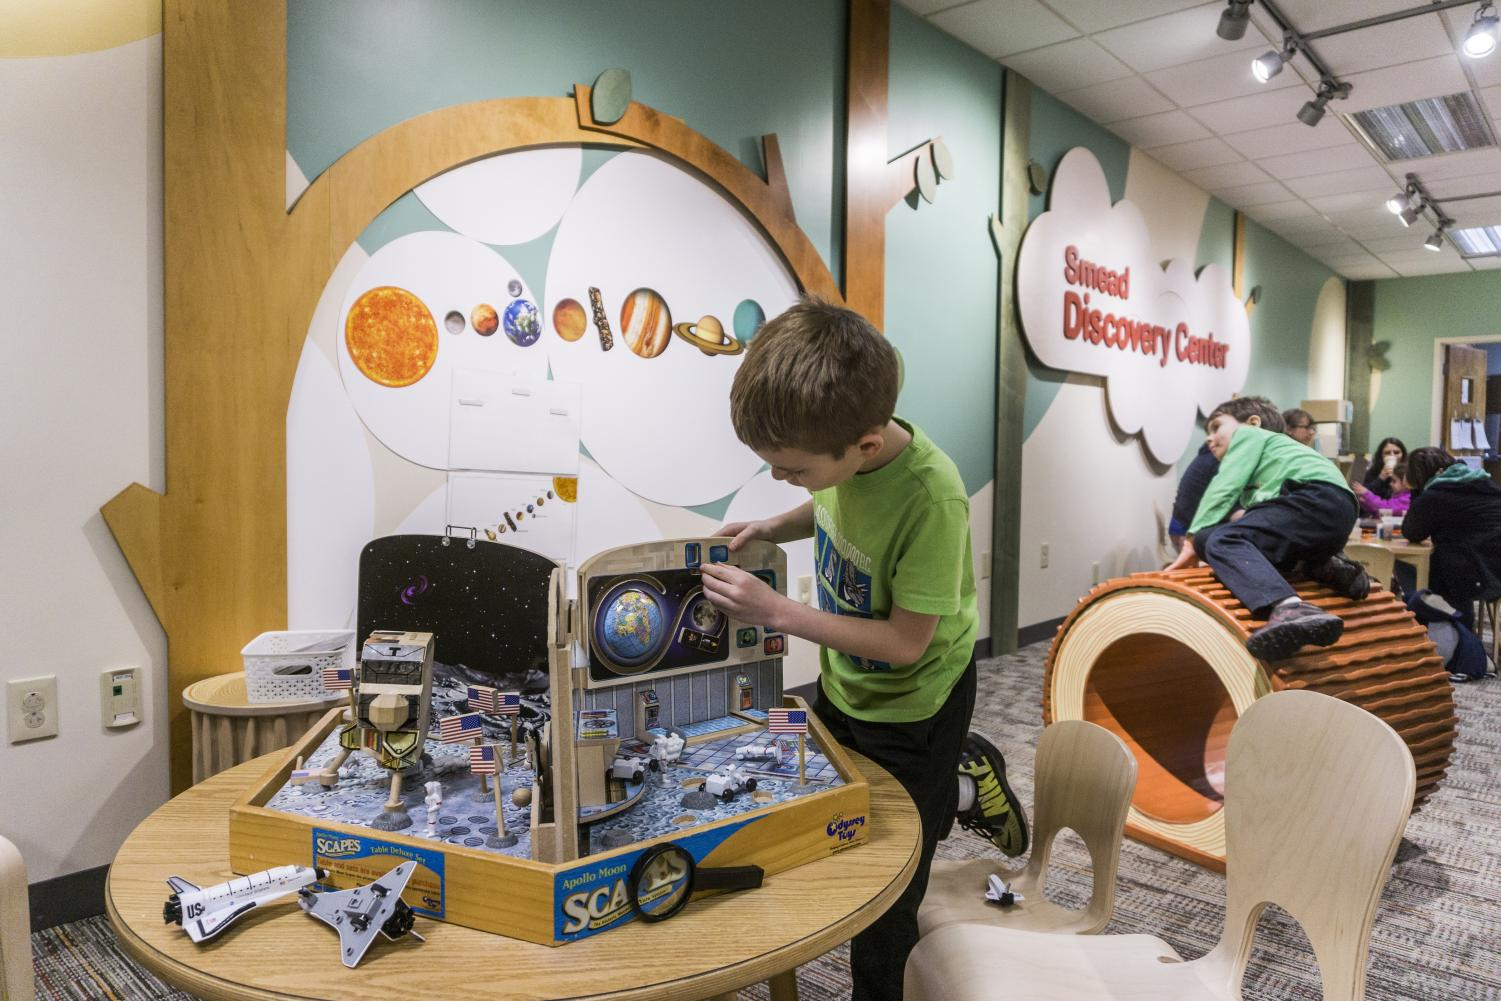 Parents and children engage in creative and educational activities centered around astronomy for the Cleveland Museum of Natural History (CMNH)'s Astronomy Day.